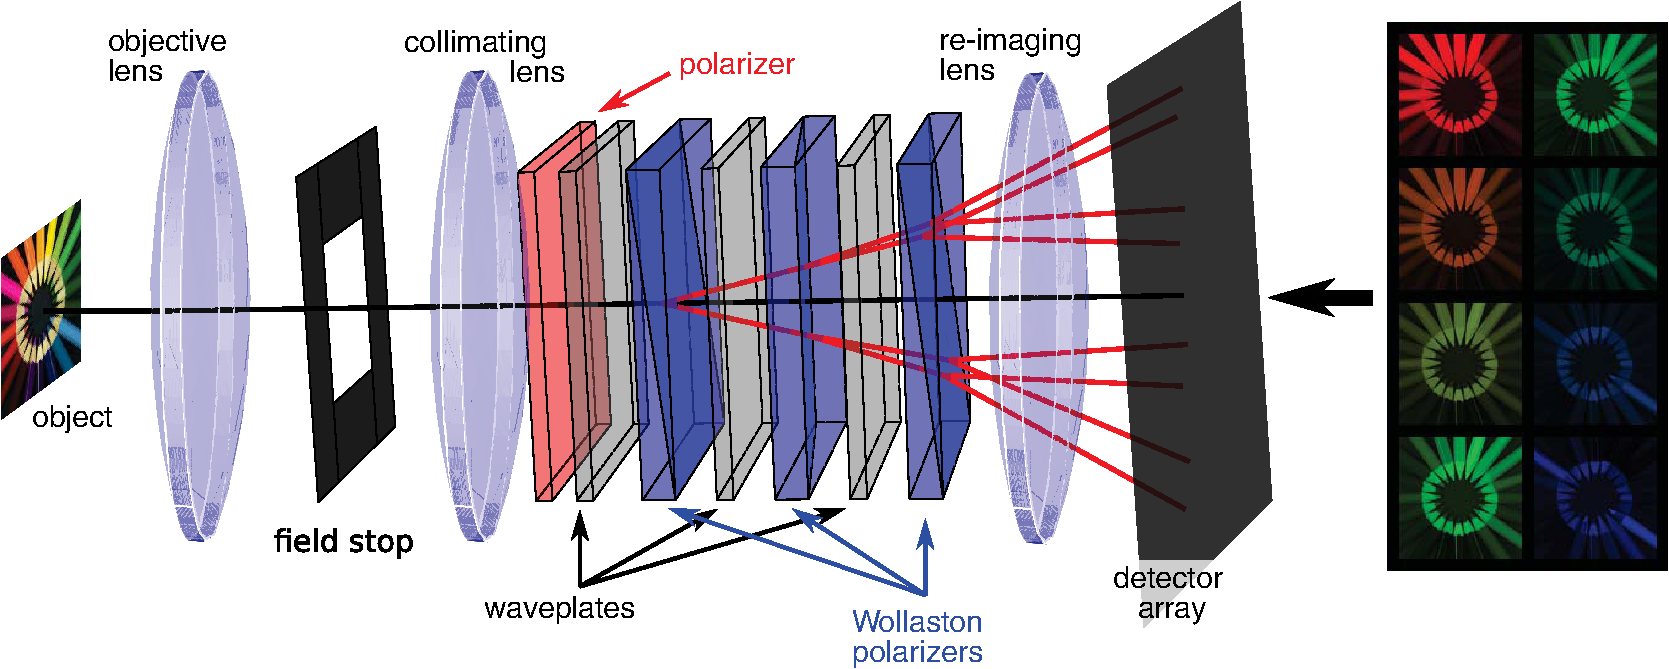 Review of snapshot spectral imaging technologies